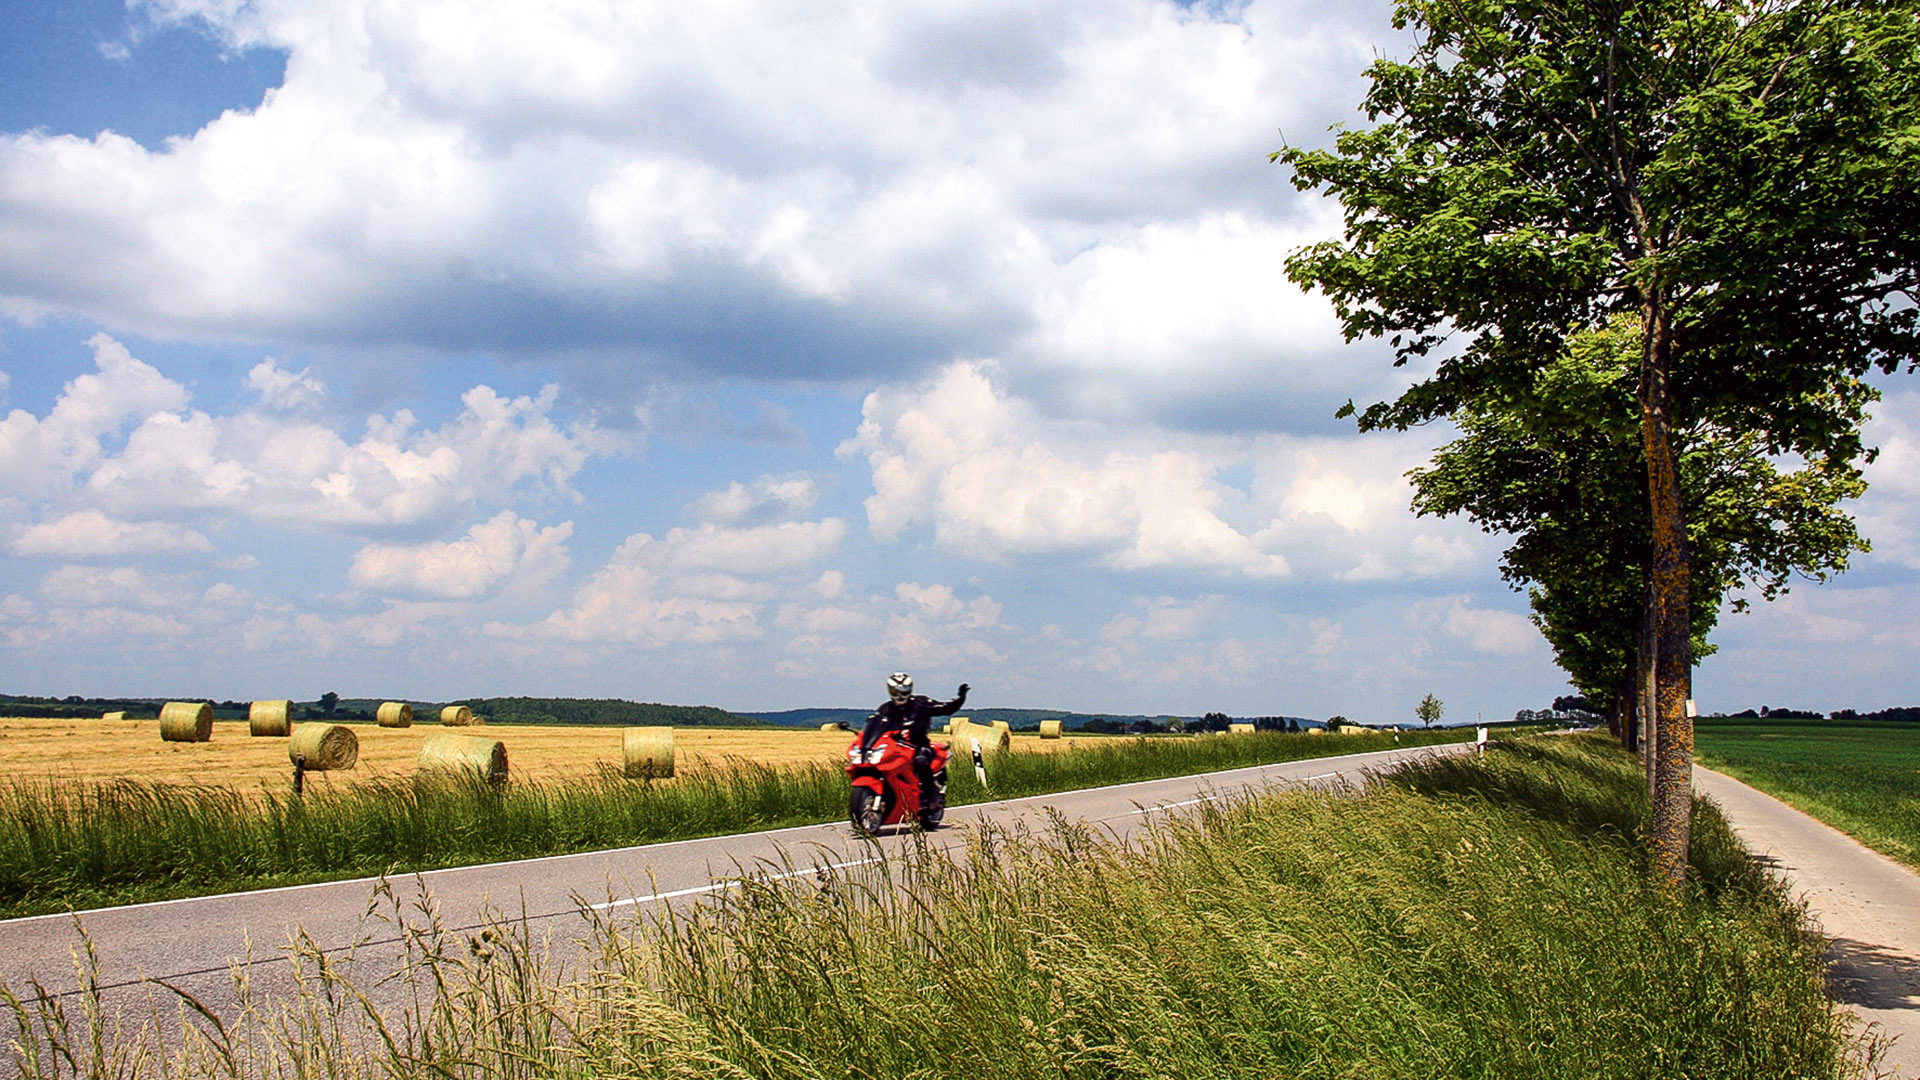 Vom Saarland ins Elsass - Route 4